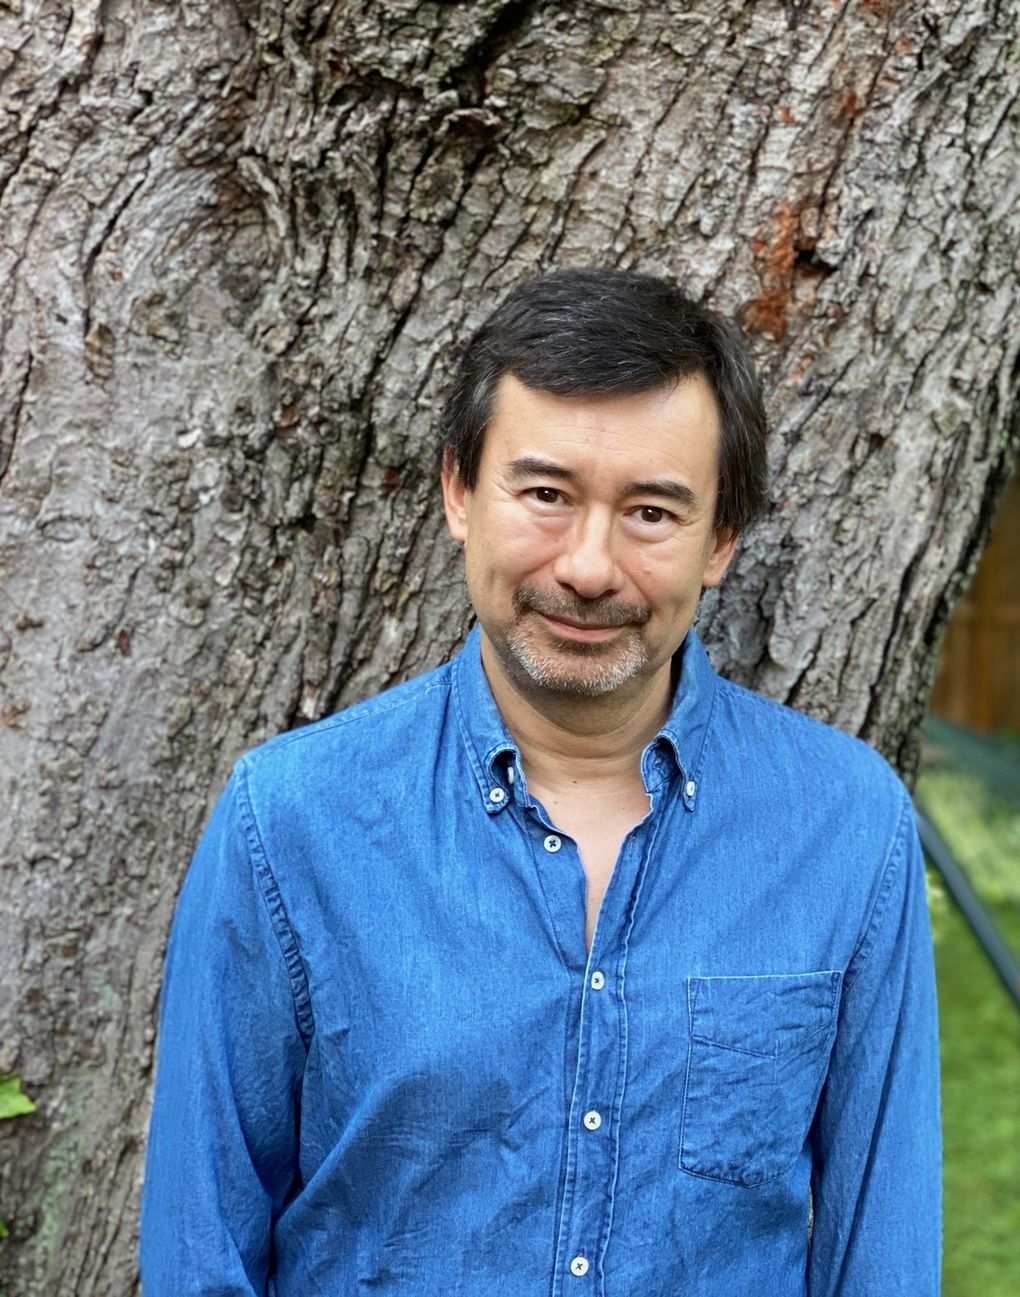 """Peter Ho Davies will talk about """"A Lie Someone Told You About Yourself"""" in a virtual event hosted by Elliott Bay Book Company on Monday, Jan. 11. (Lynn Raughley)"""